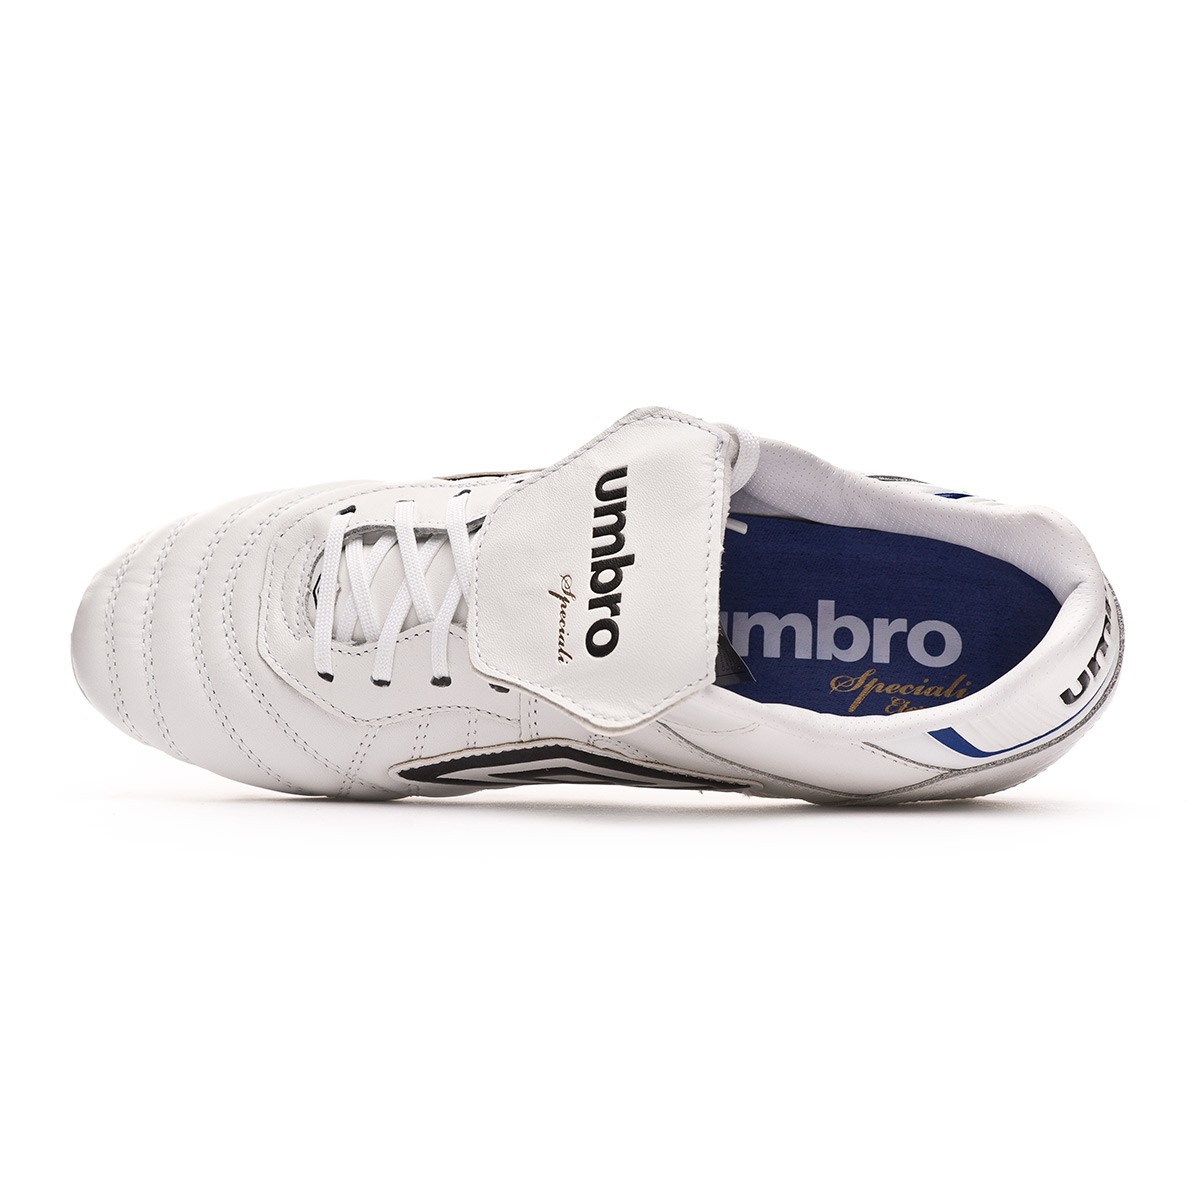 new product 123dd 847ec Scarpe Umbro Speciali Eternal Pro HG